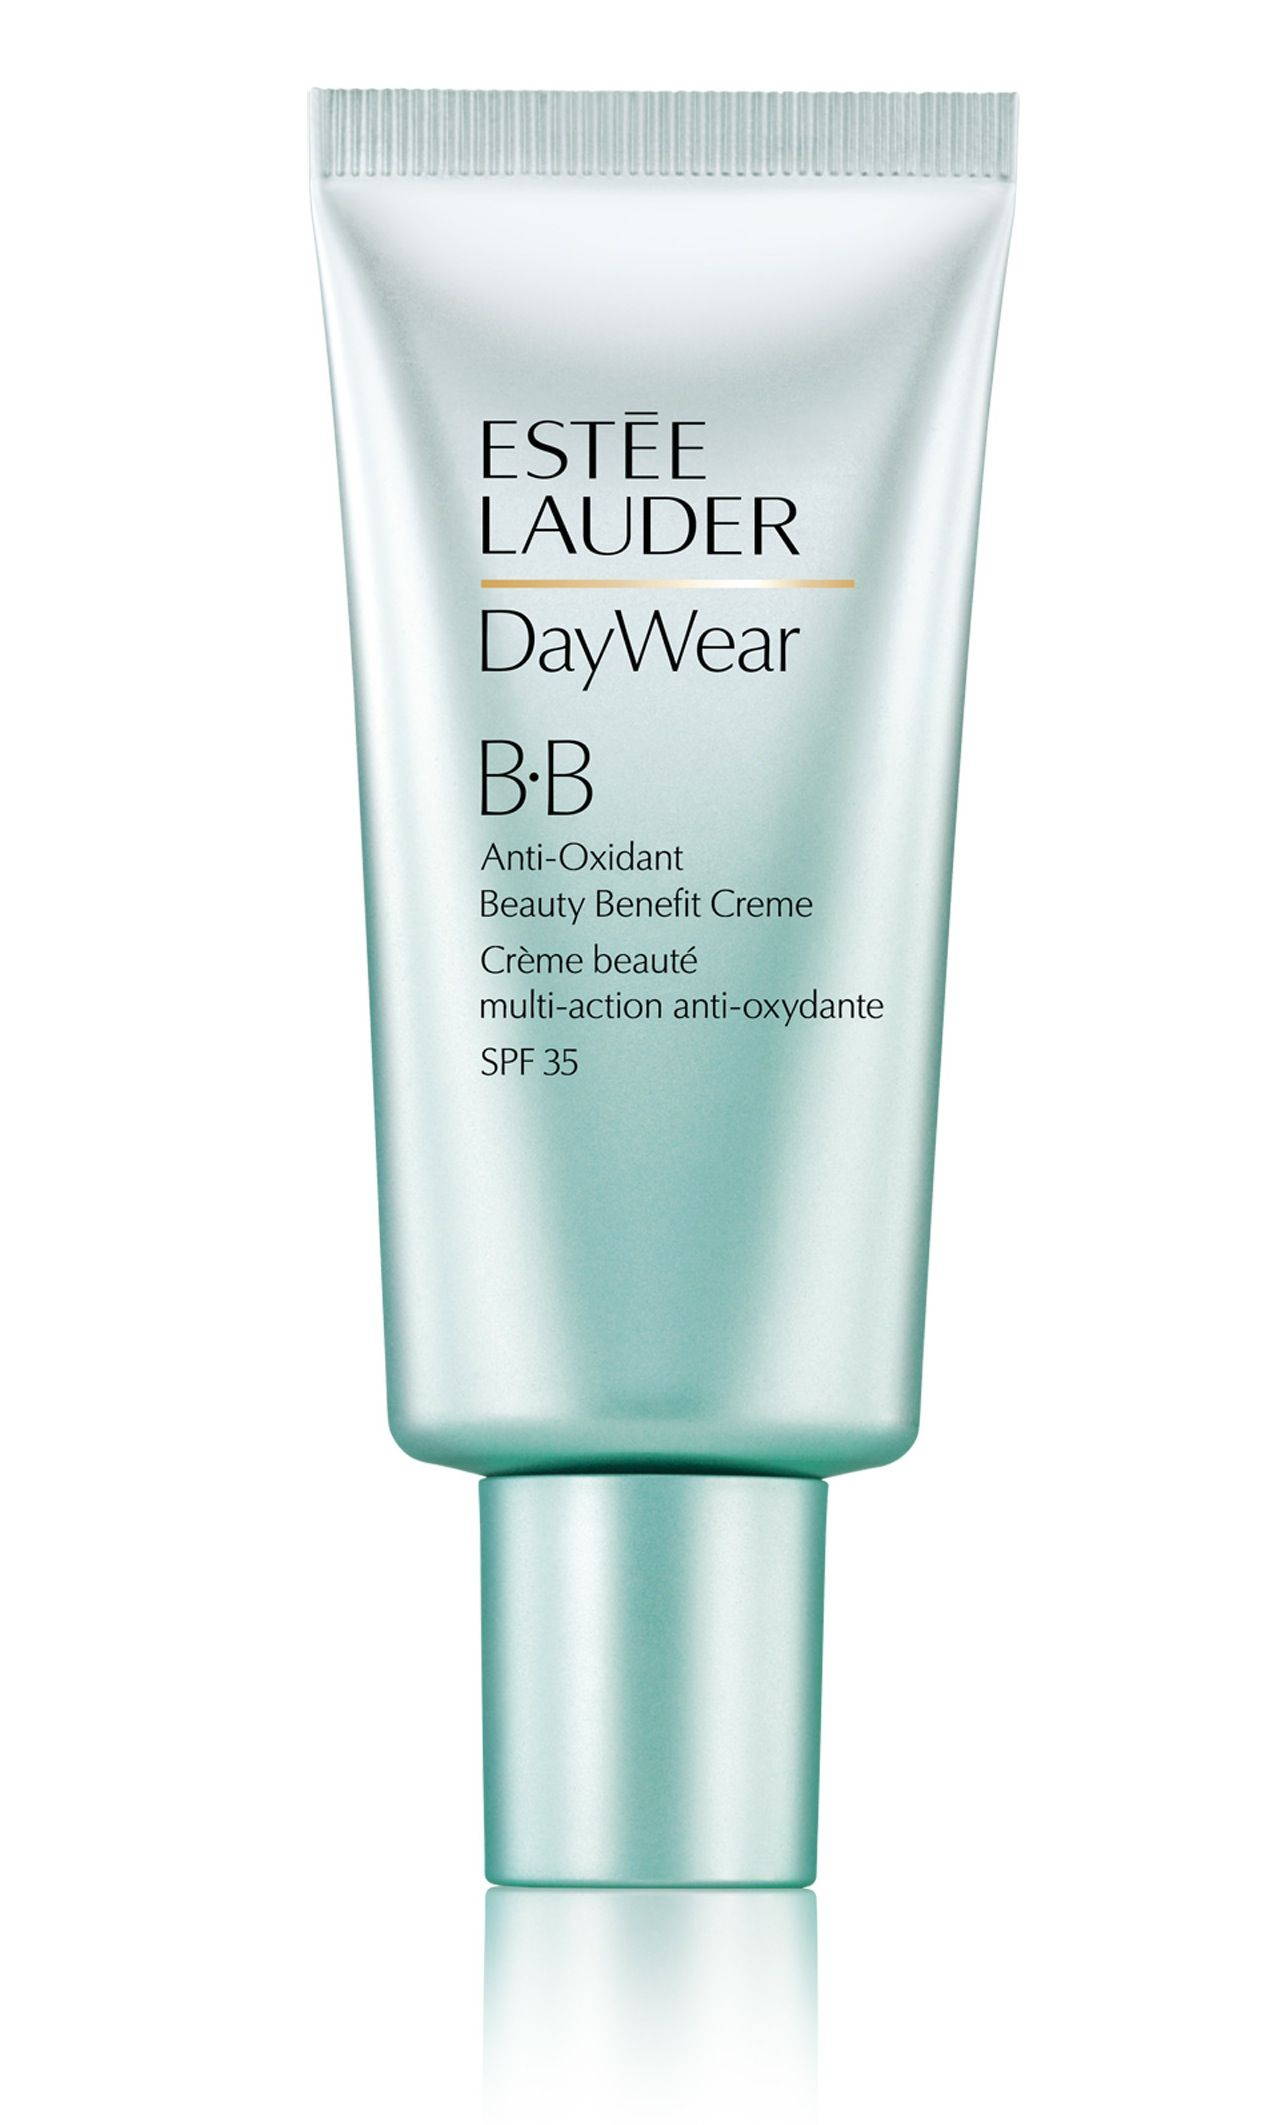 Linda Says Speaking Of Brilliant Products I Didn T Realize I Needed How About A Tinted Spf 35 Oil Free Moisturizer T Bb Cream Best Bb Cream Bb Cream Reviews